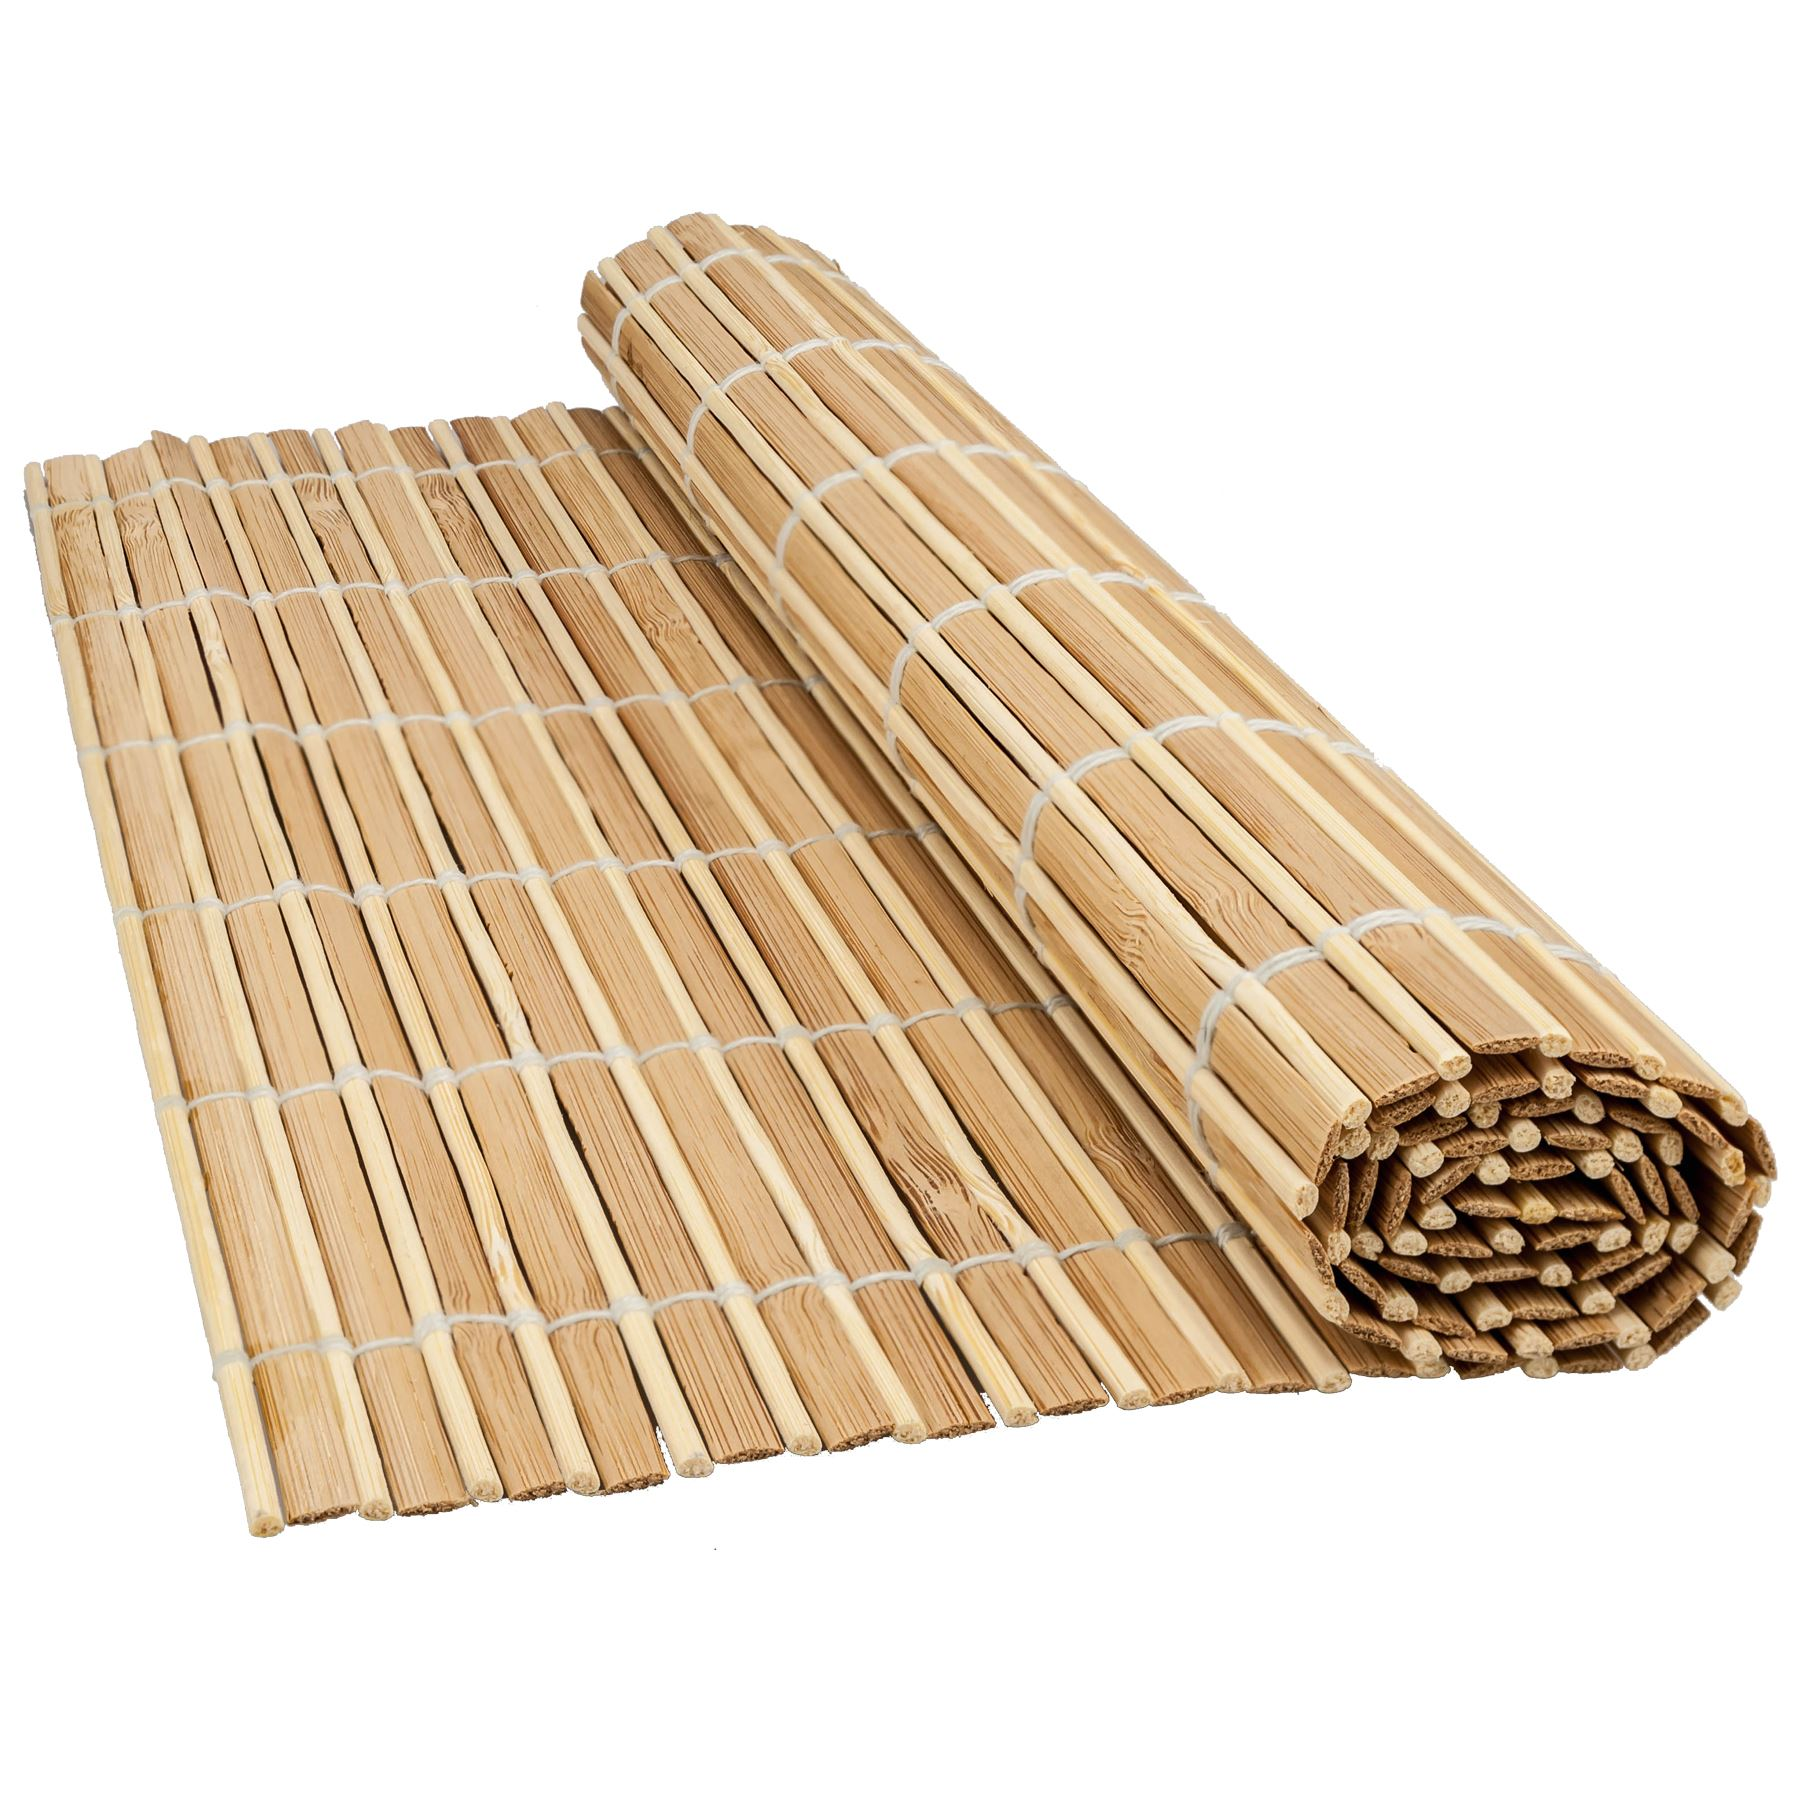 Bamboo Wood Table Placemats Large Serving Dining Roll